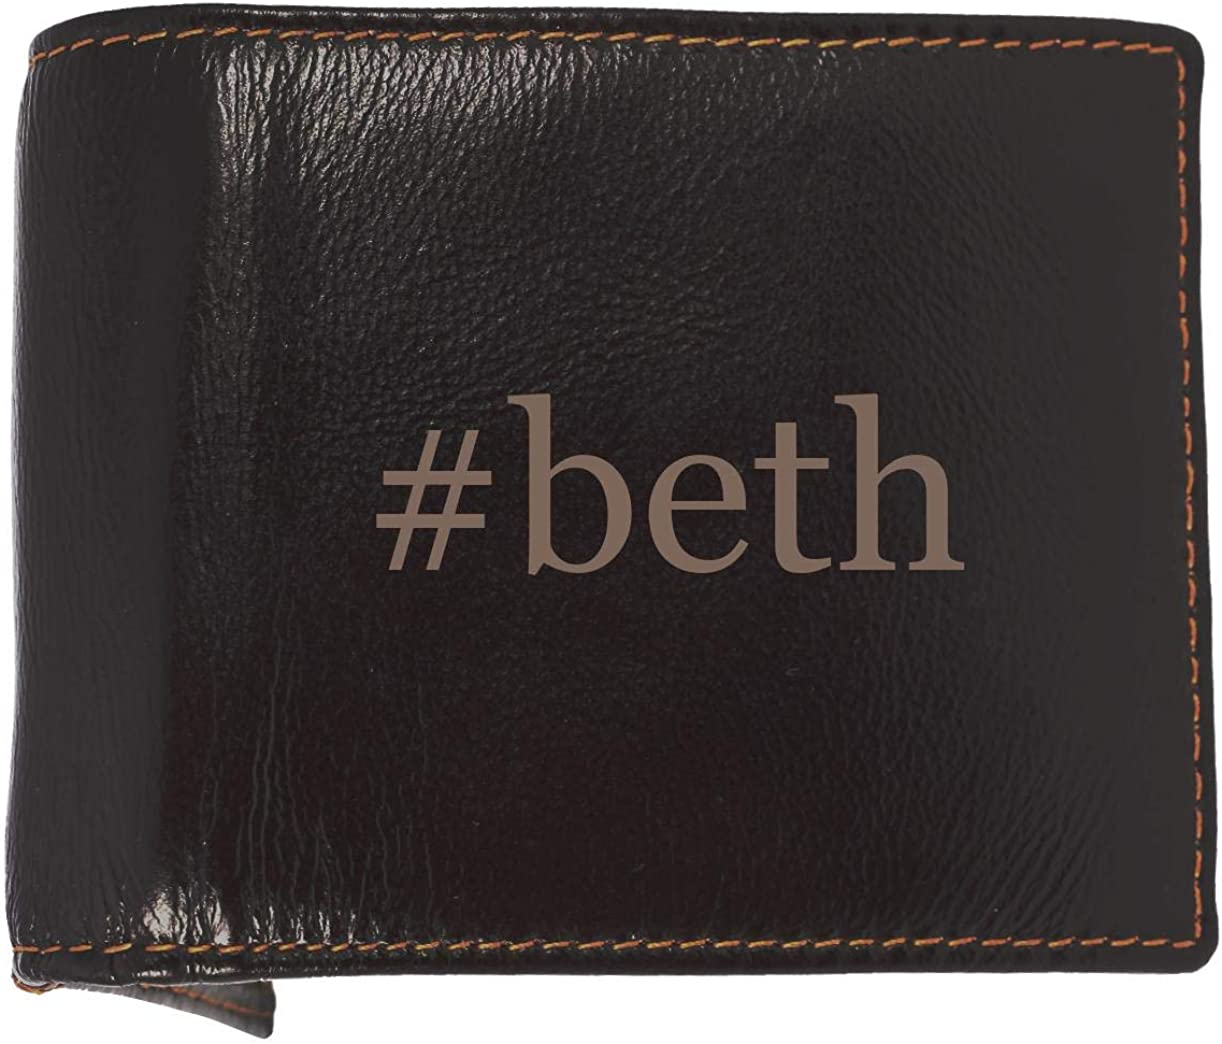 #beth - Soft Hashtag Cowhide Genuine Engraved Bifold Leather Wallet 61eqaTiv1ZL